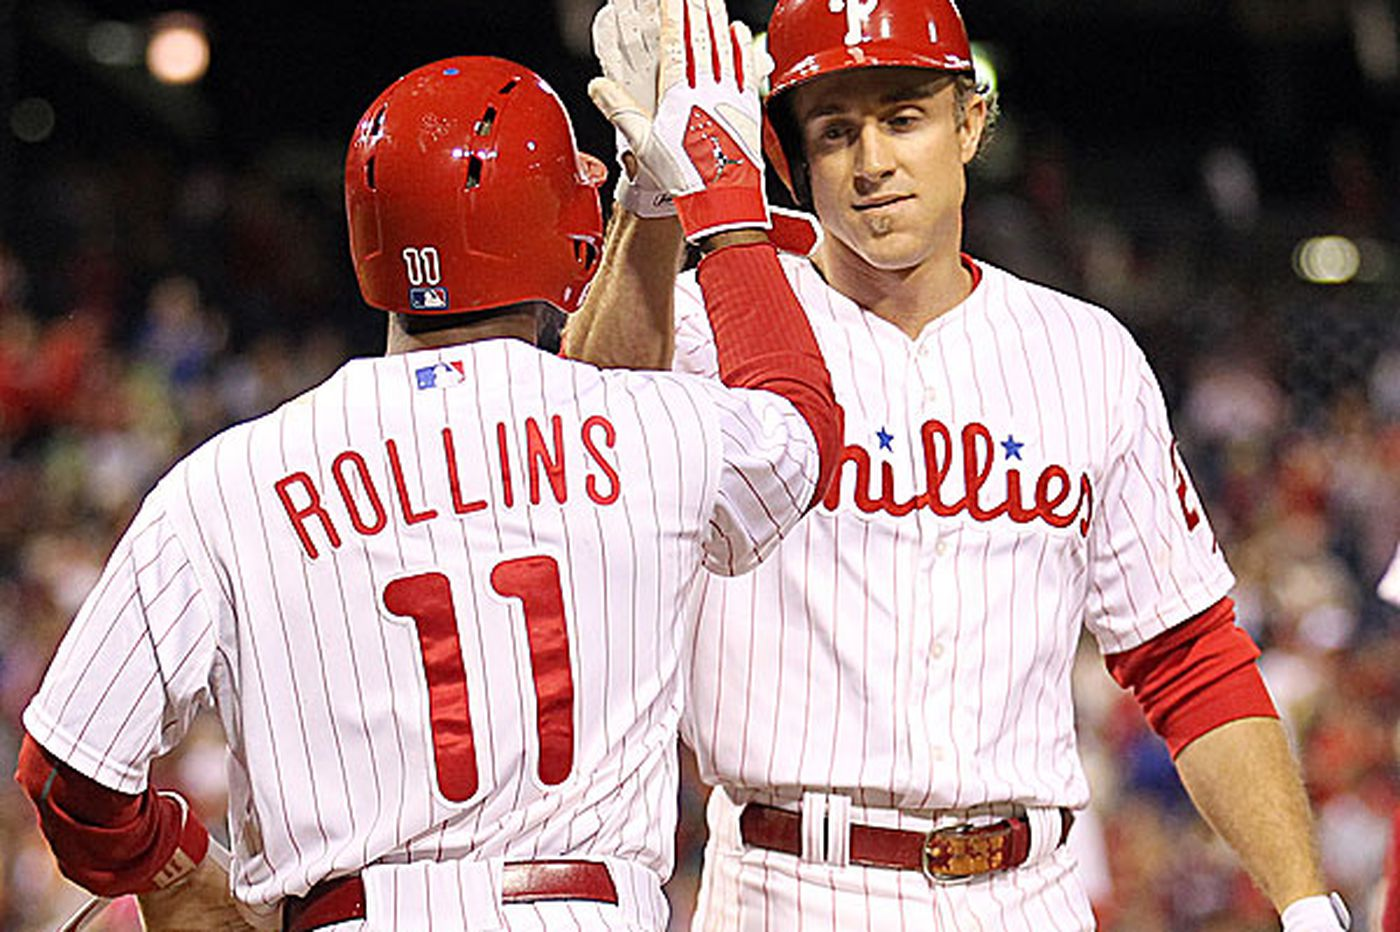 Phillies Notes: Rollins and Utley staying put with Phils